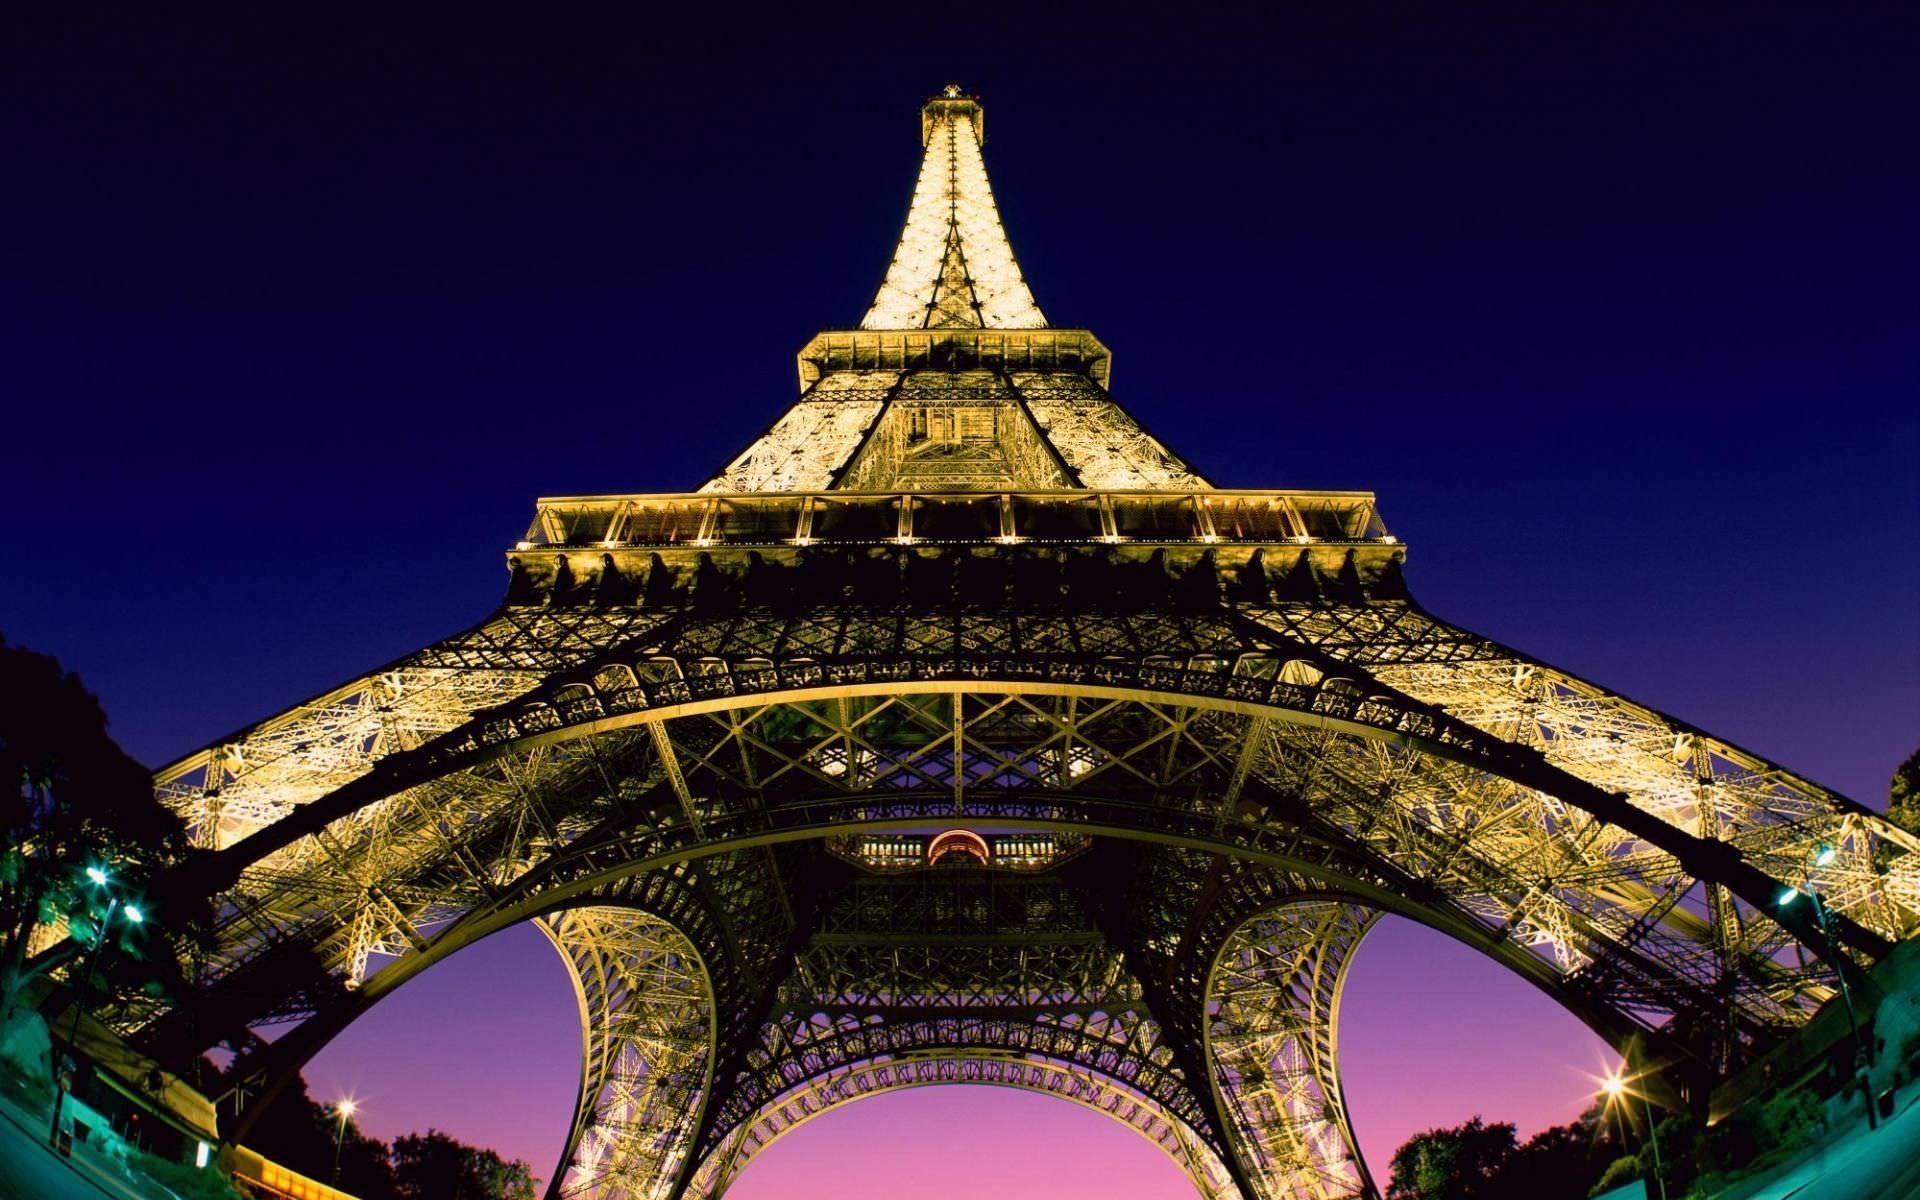 Eiffel Tower At Night Desktop Wallpaper